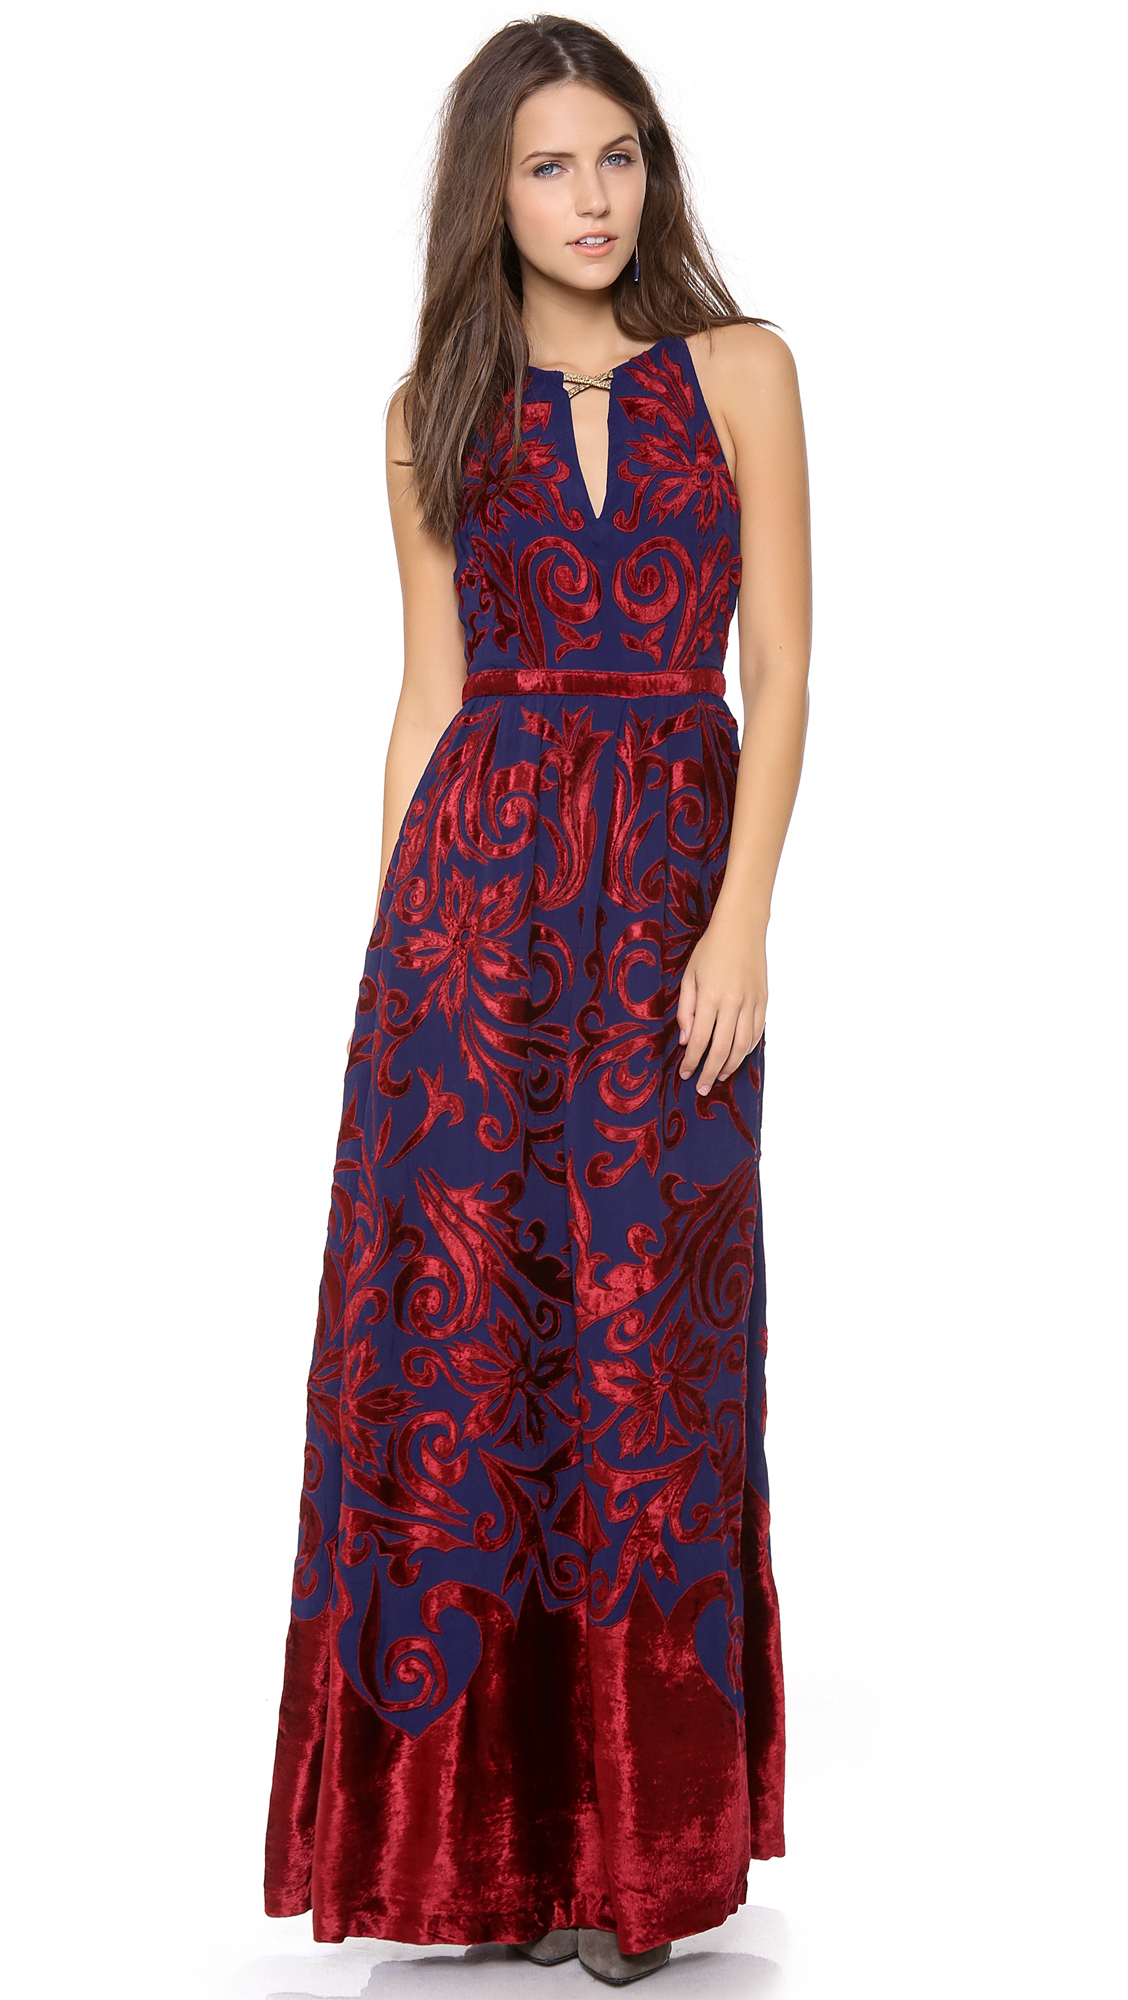 Free People Hedgemaze Maxi Dress in Indigo Combo (Red) - Lyst